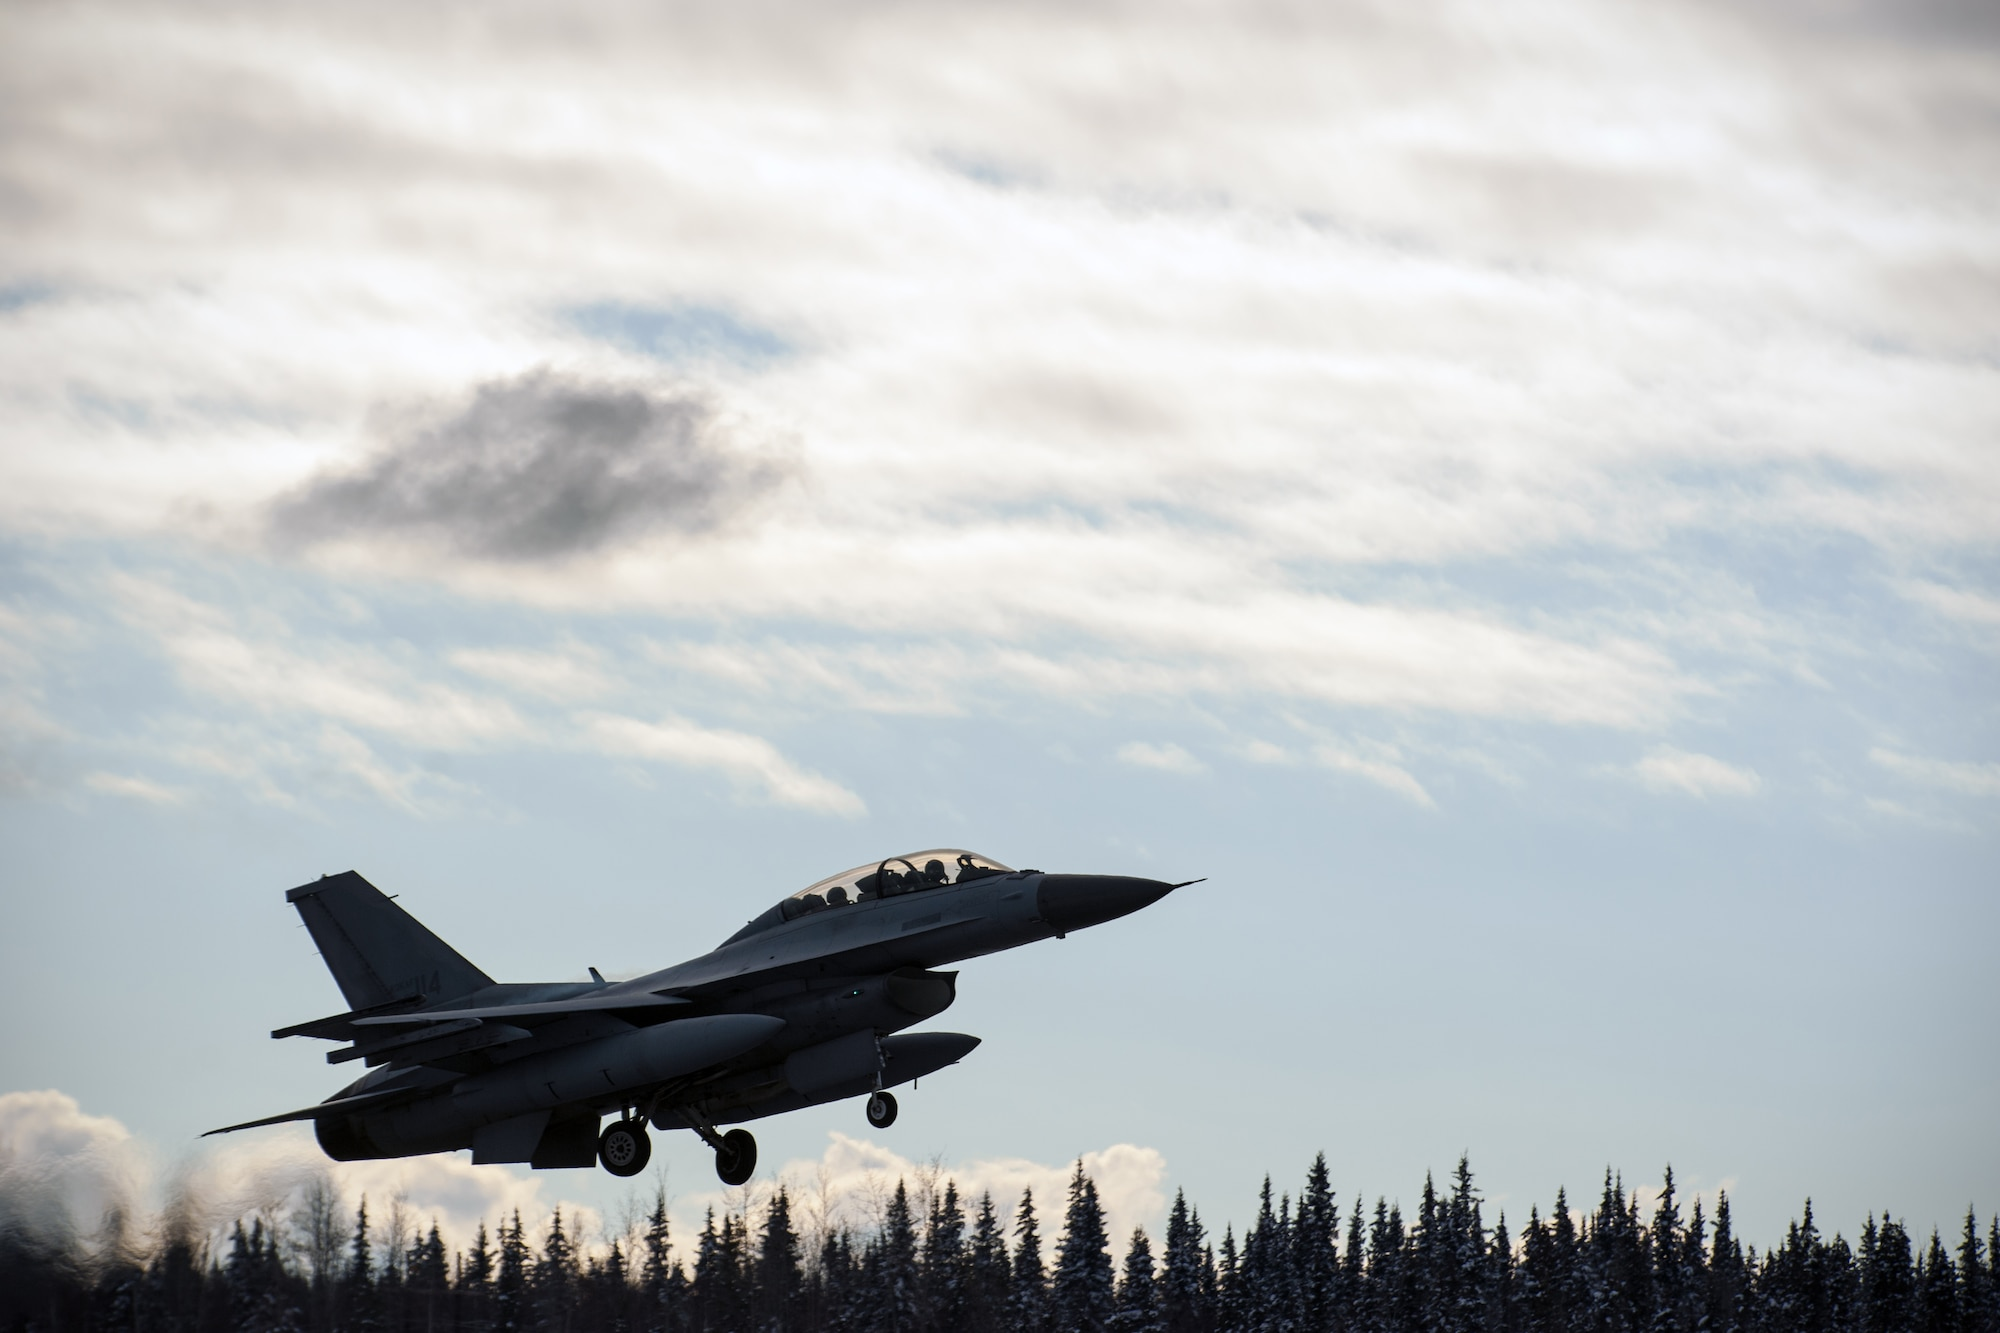 A South Korea air force KF-16 Fighting Falcon takes off during Red Flag-Alaska 15-1 Oct. 9, 2014, at Eielson Air Force Base, Alaska. This exercise marks the first time South Korea air force KF-16s have participated in Red Flag-Alaska. (U.S. Air Force photo/Senior Airman Taylor Curry)